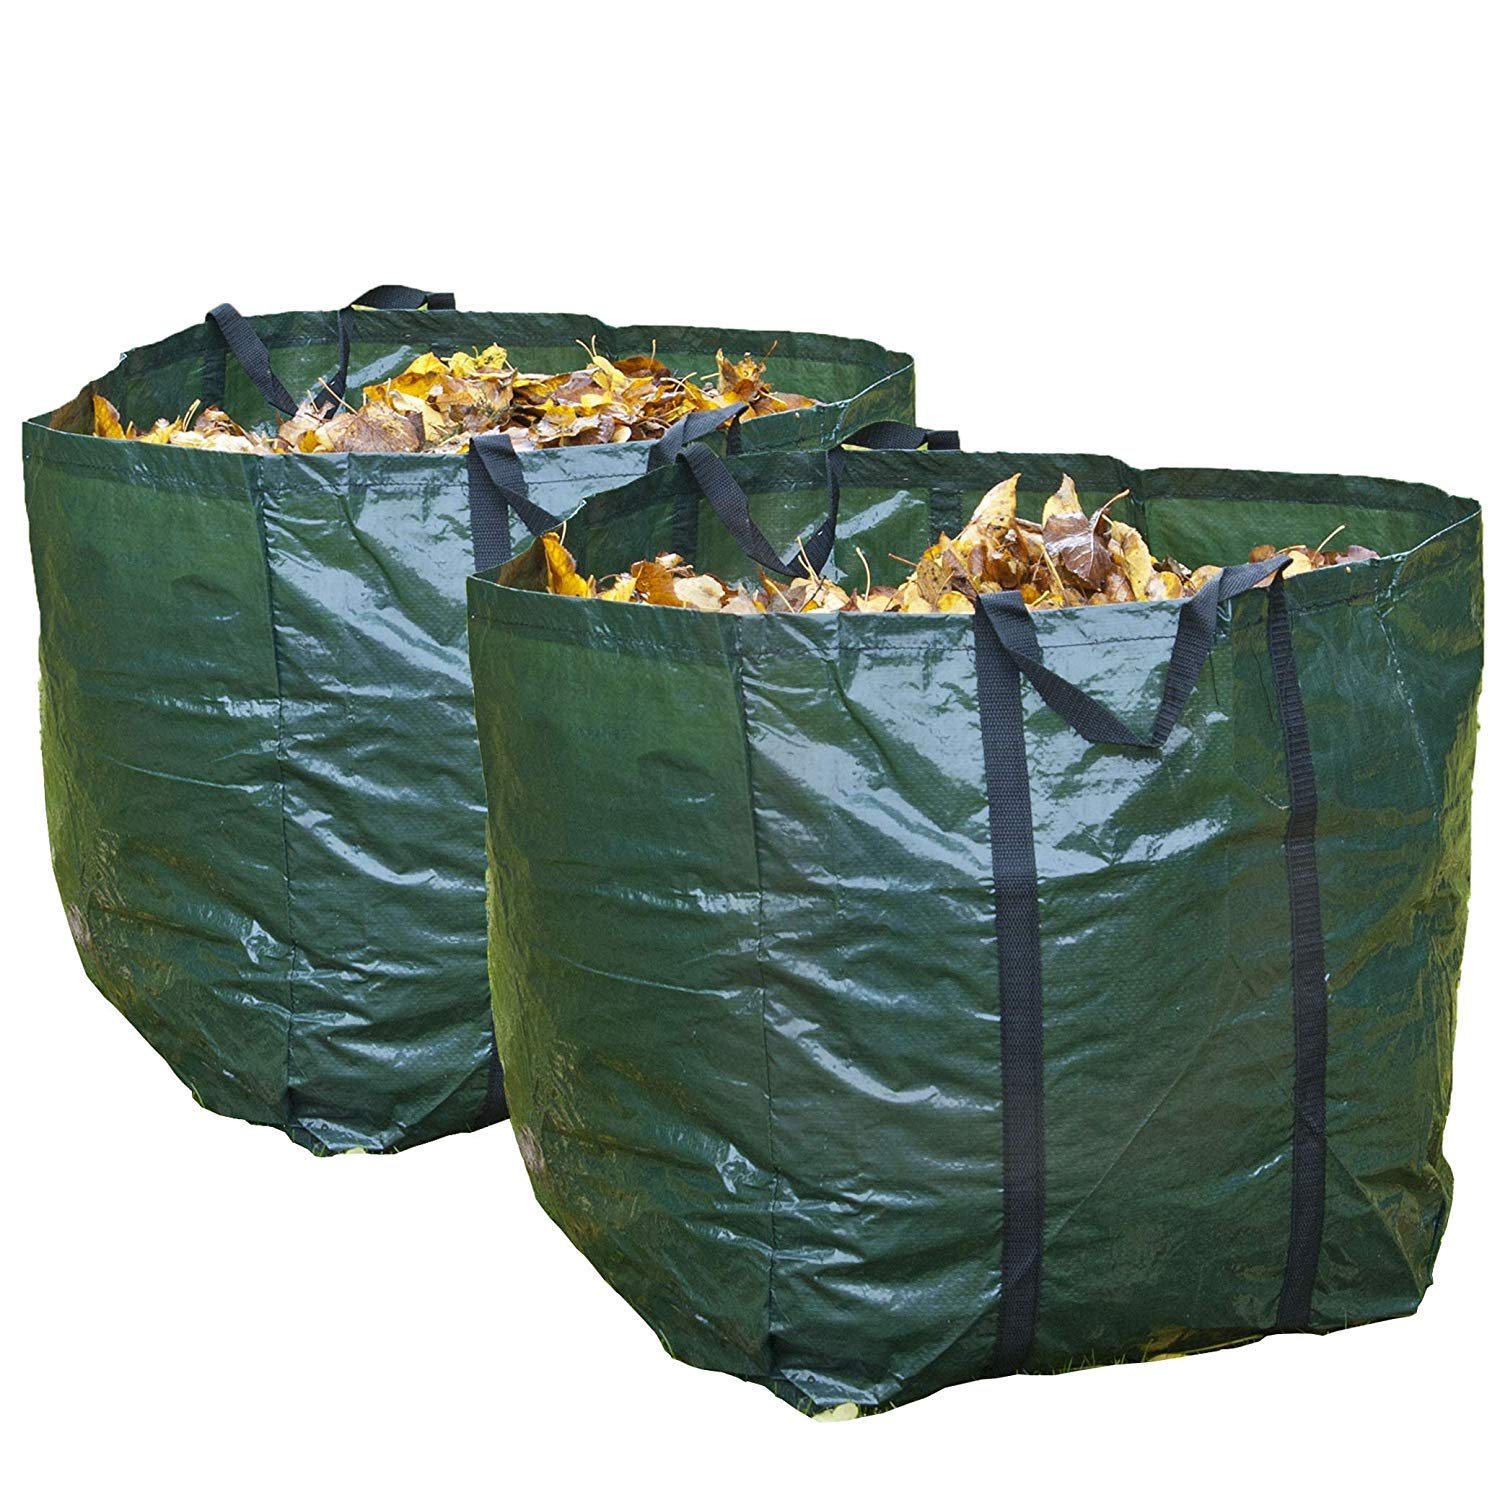 GLOW Set of 2 Heavy Duty Garden Waste Bags with Carry Handles – Large Reusable Premium Double Stitched 150L Collapsible Folding Lightweight Outdoor Home and Garden Collection Bin Sack for Refuse Rubbish Leaves Soil Grass Weeds Cuttings Plants Flowers – UV